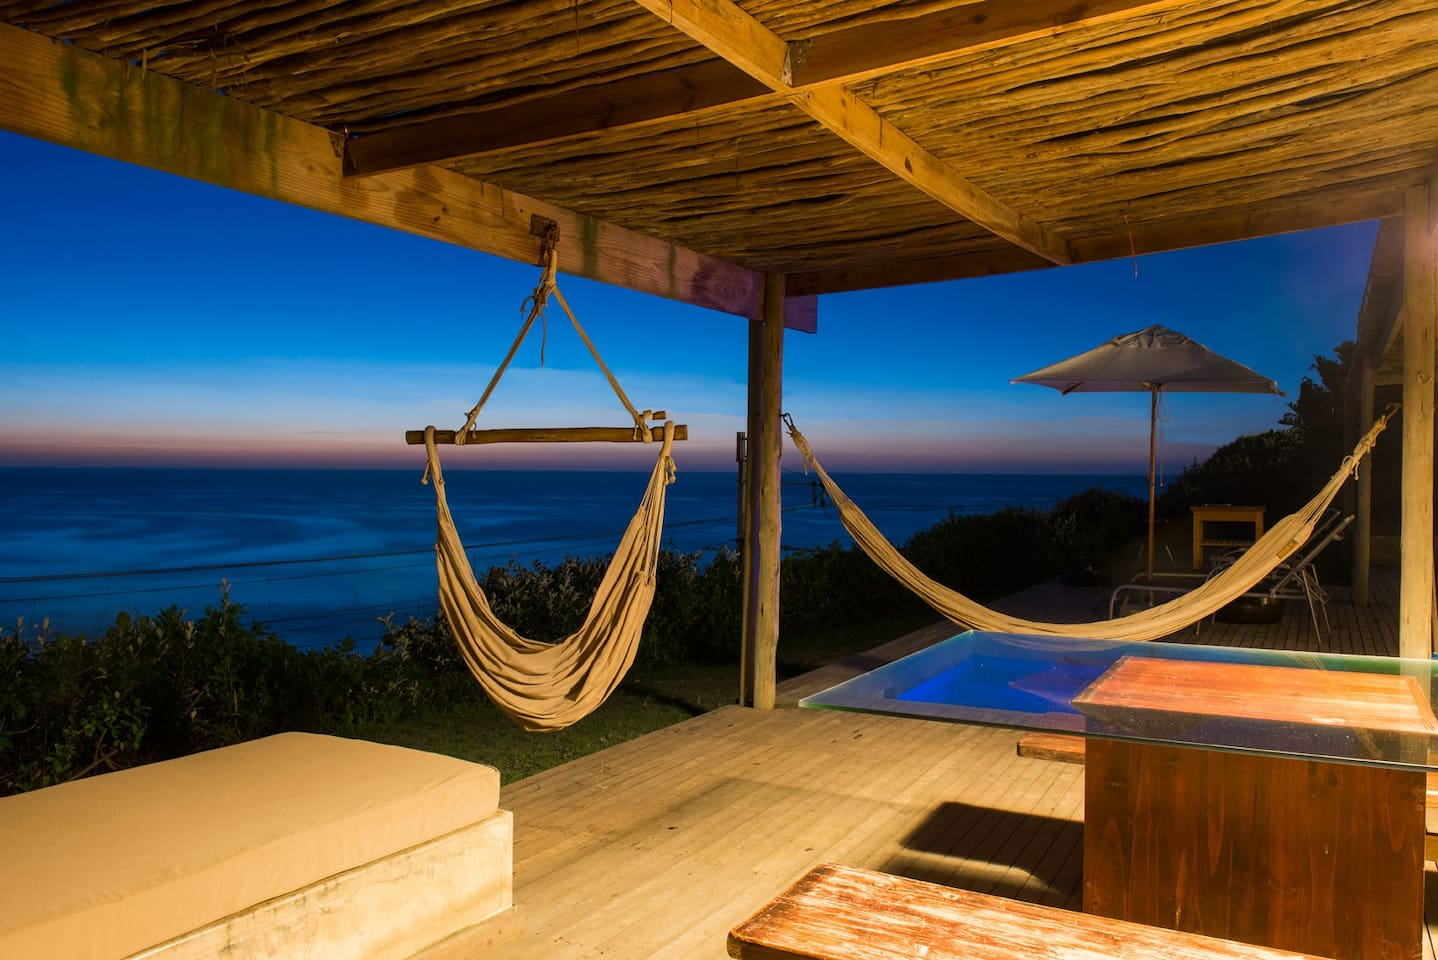 Front wrap around veranda View with hammocks and solar heated plunge pool.